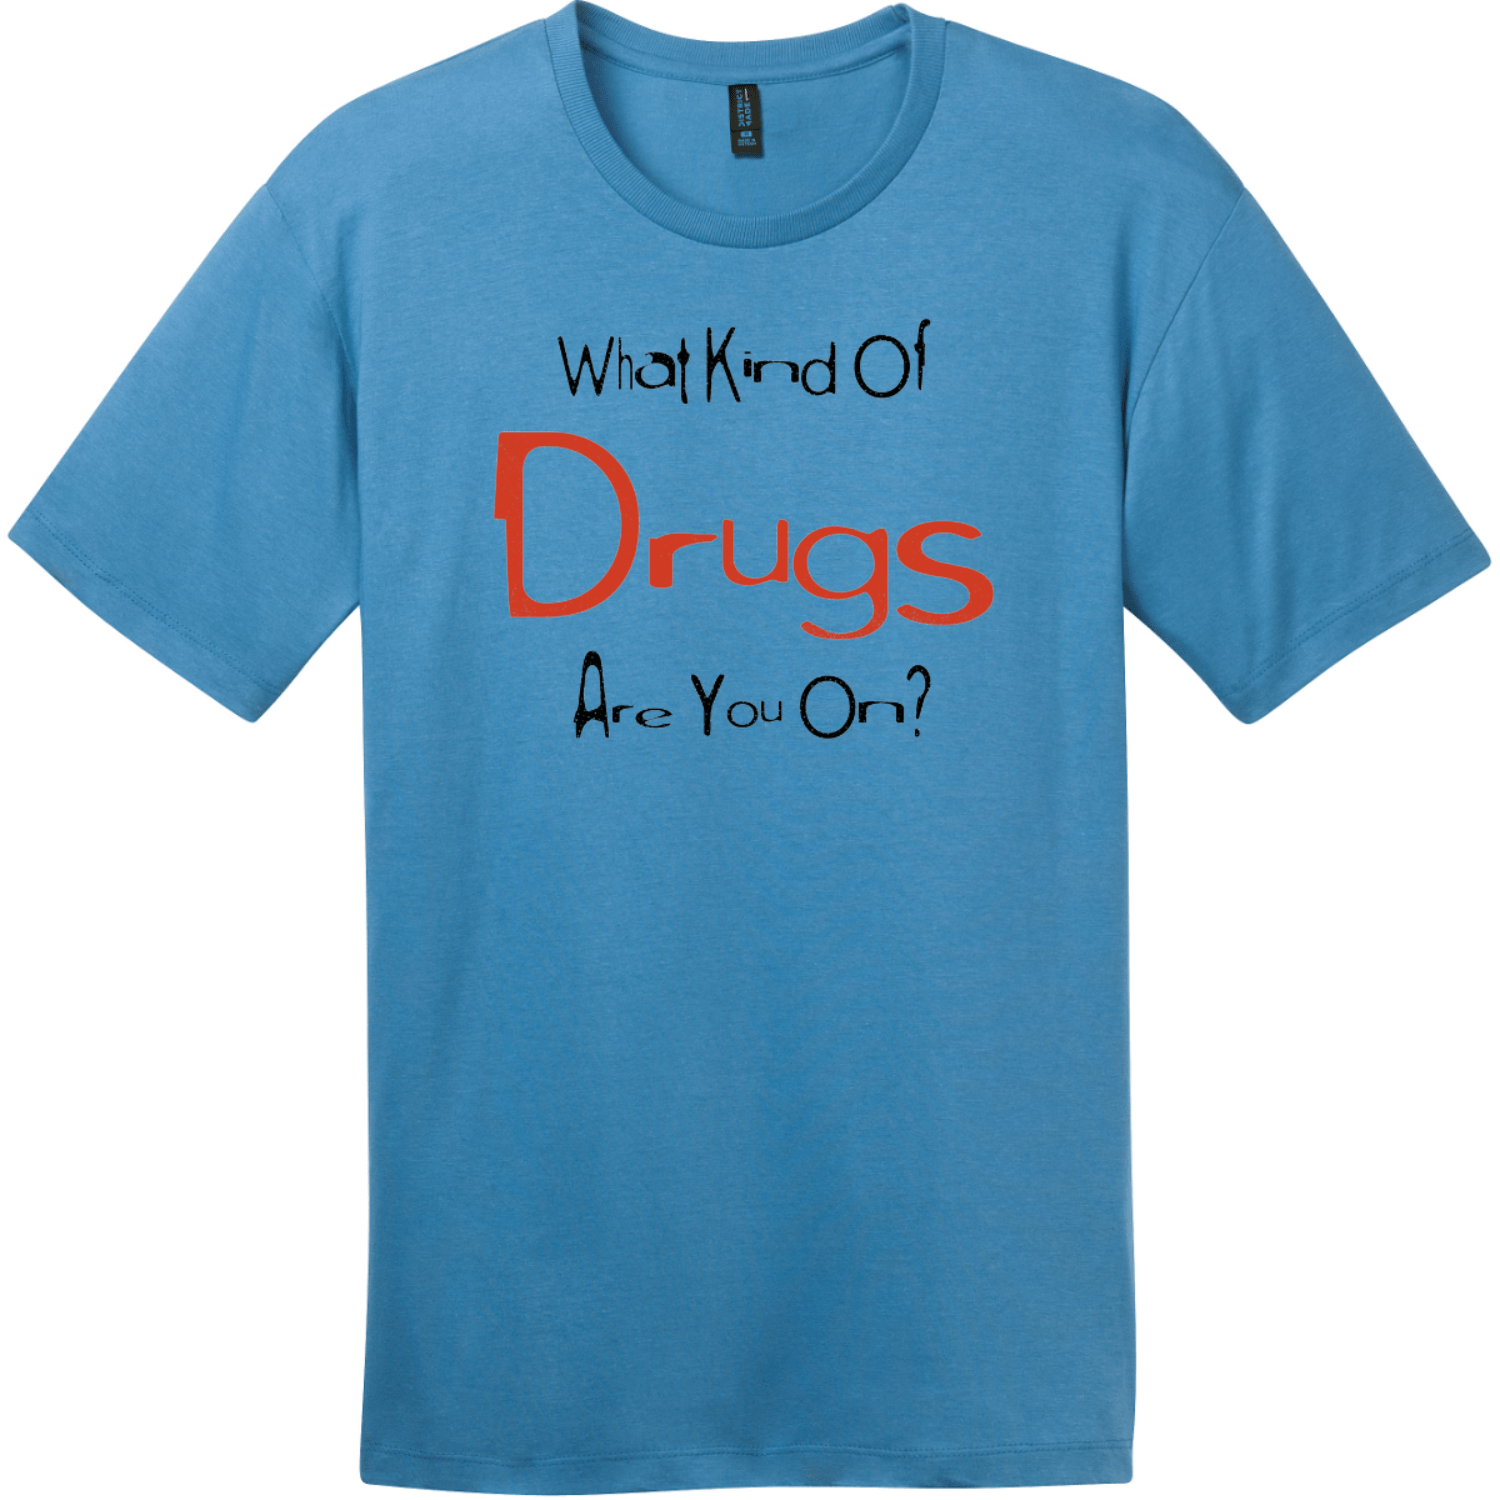 What Kind Of Drugs Are You On T-Shirt Clean Denim District Perfect Weight Tee DT104